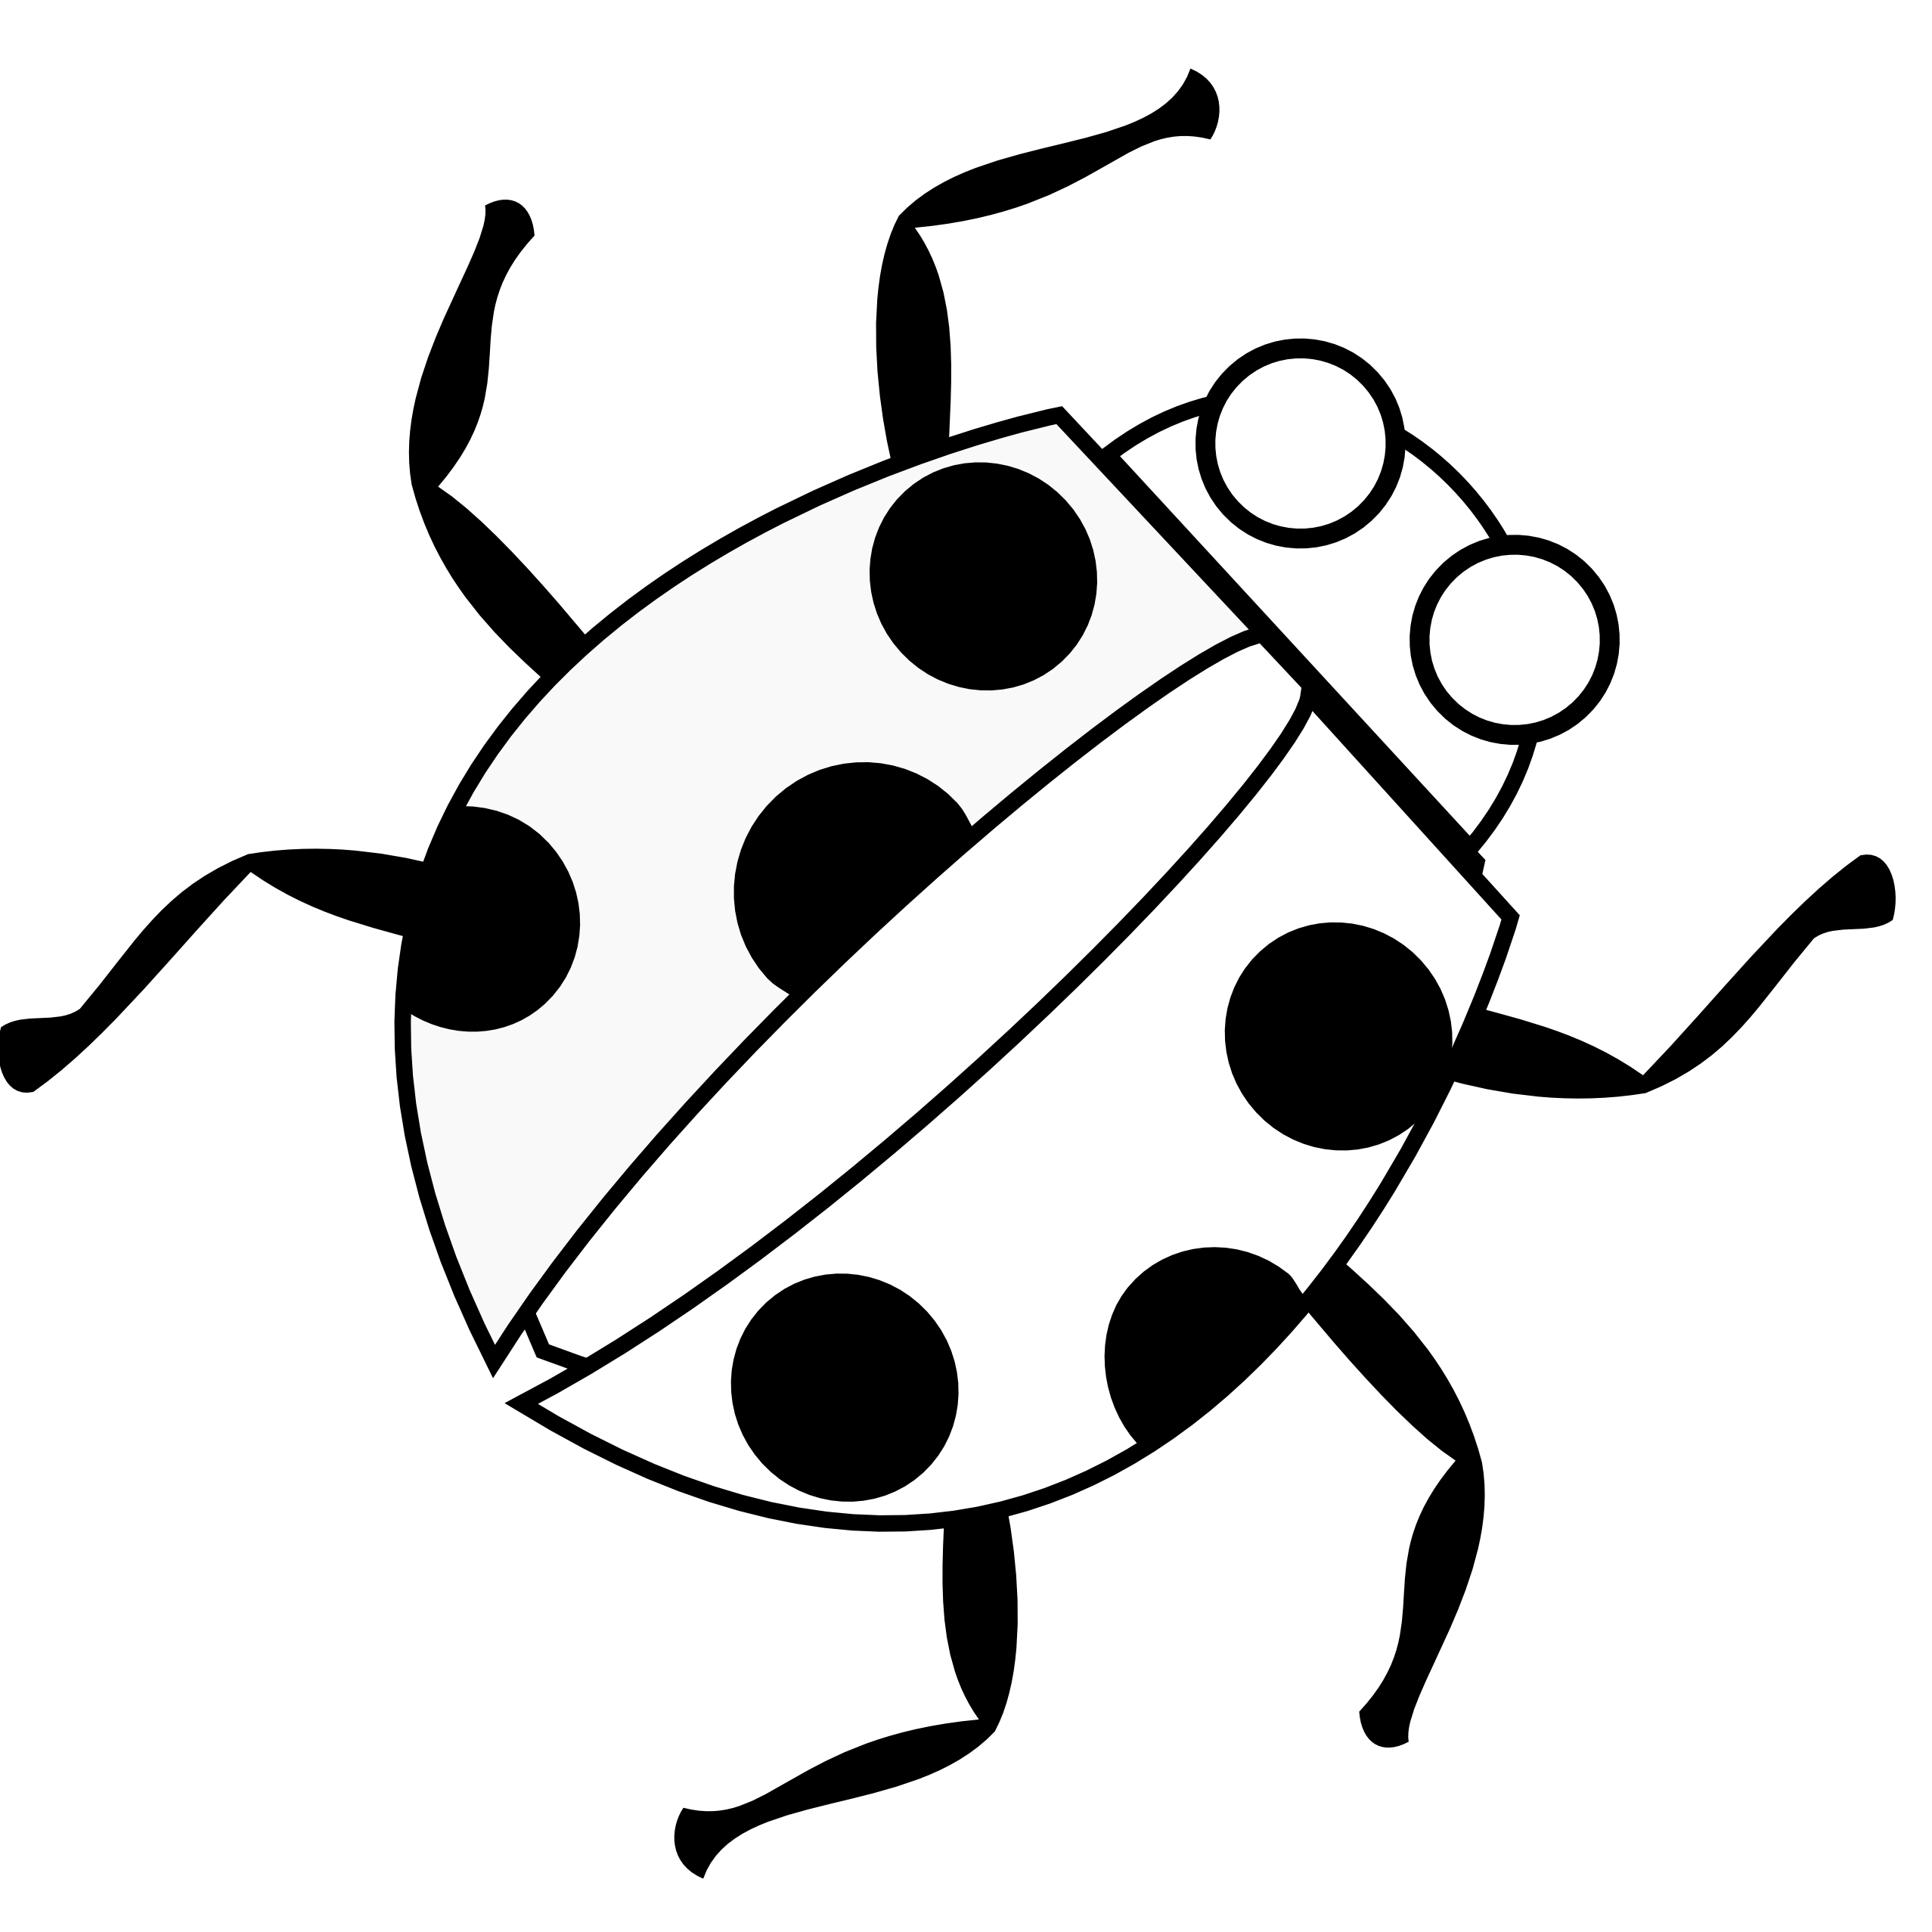 Zip line drawing at. Ladybug clipart sketch